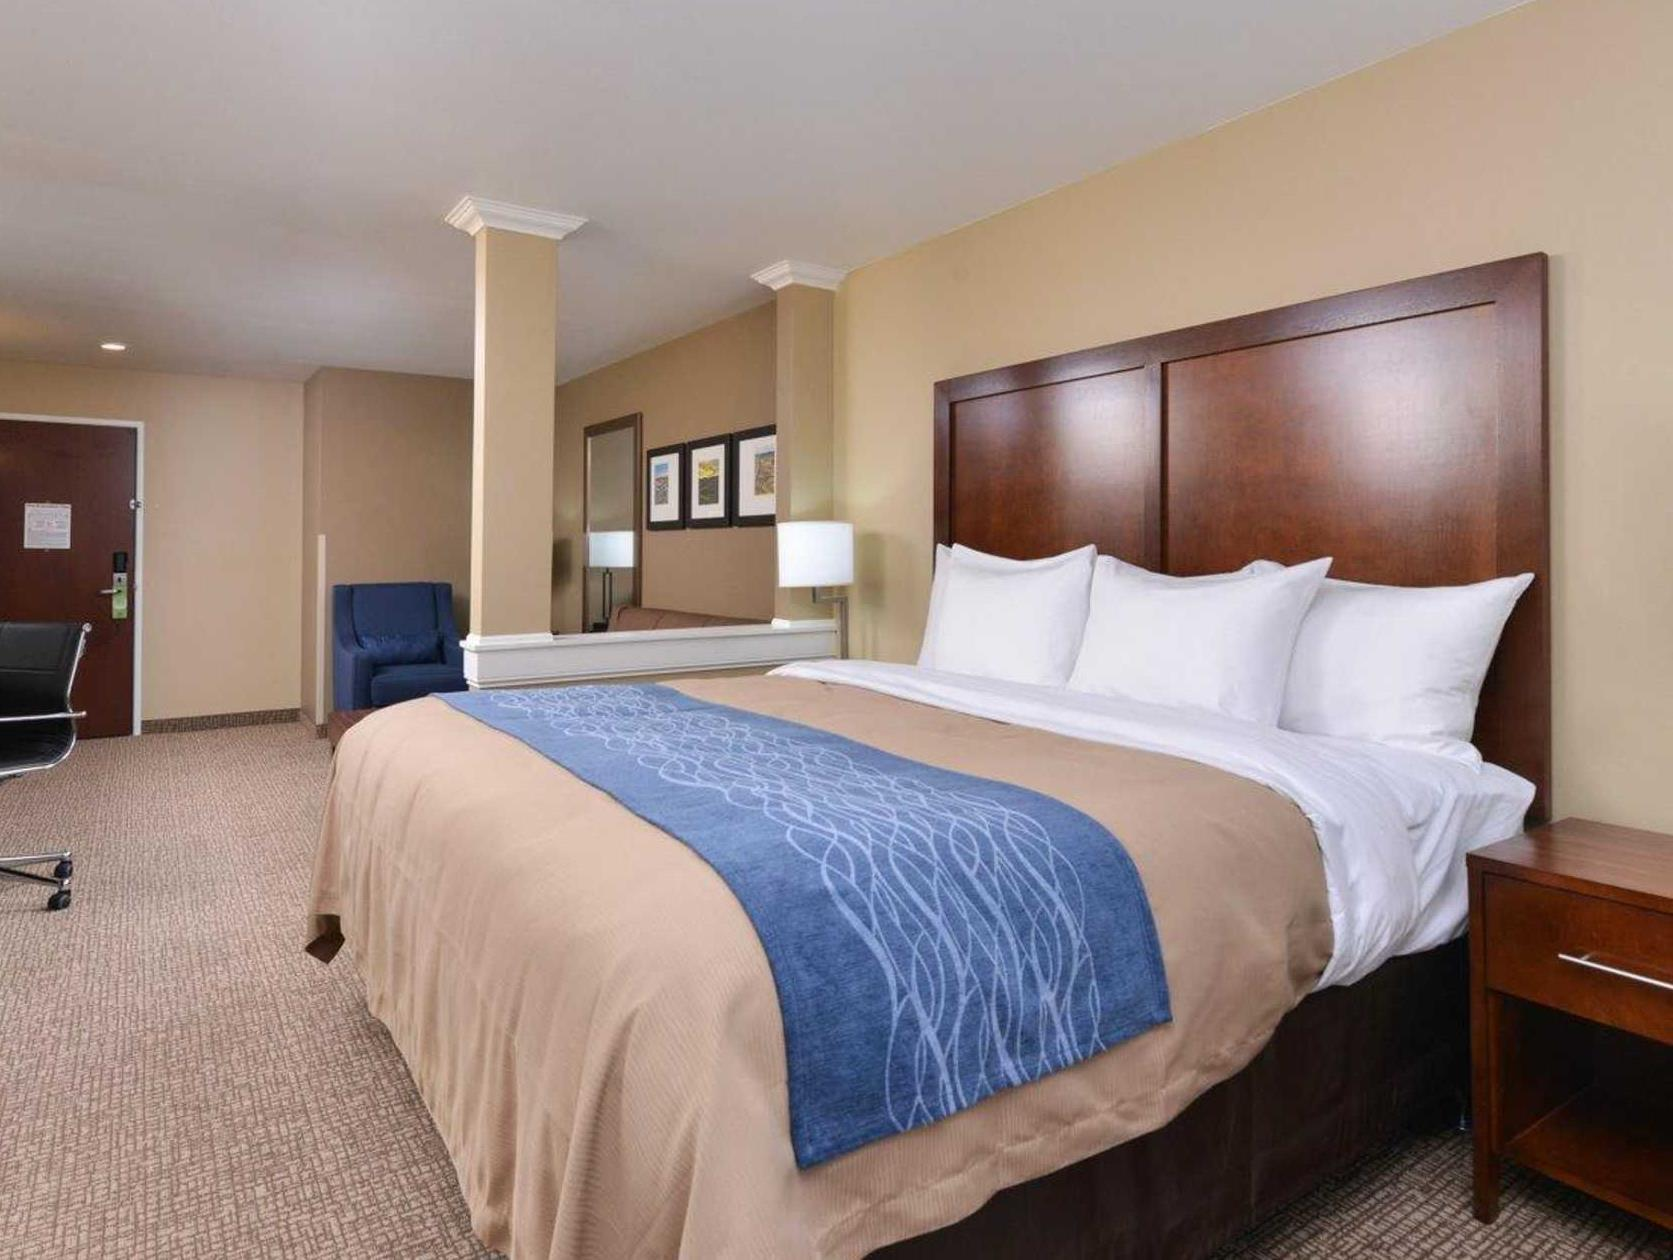 Comfort Inn and Suites Mandan - Bismarck Reviews